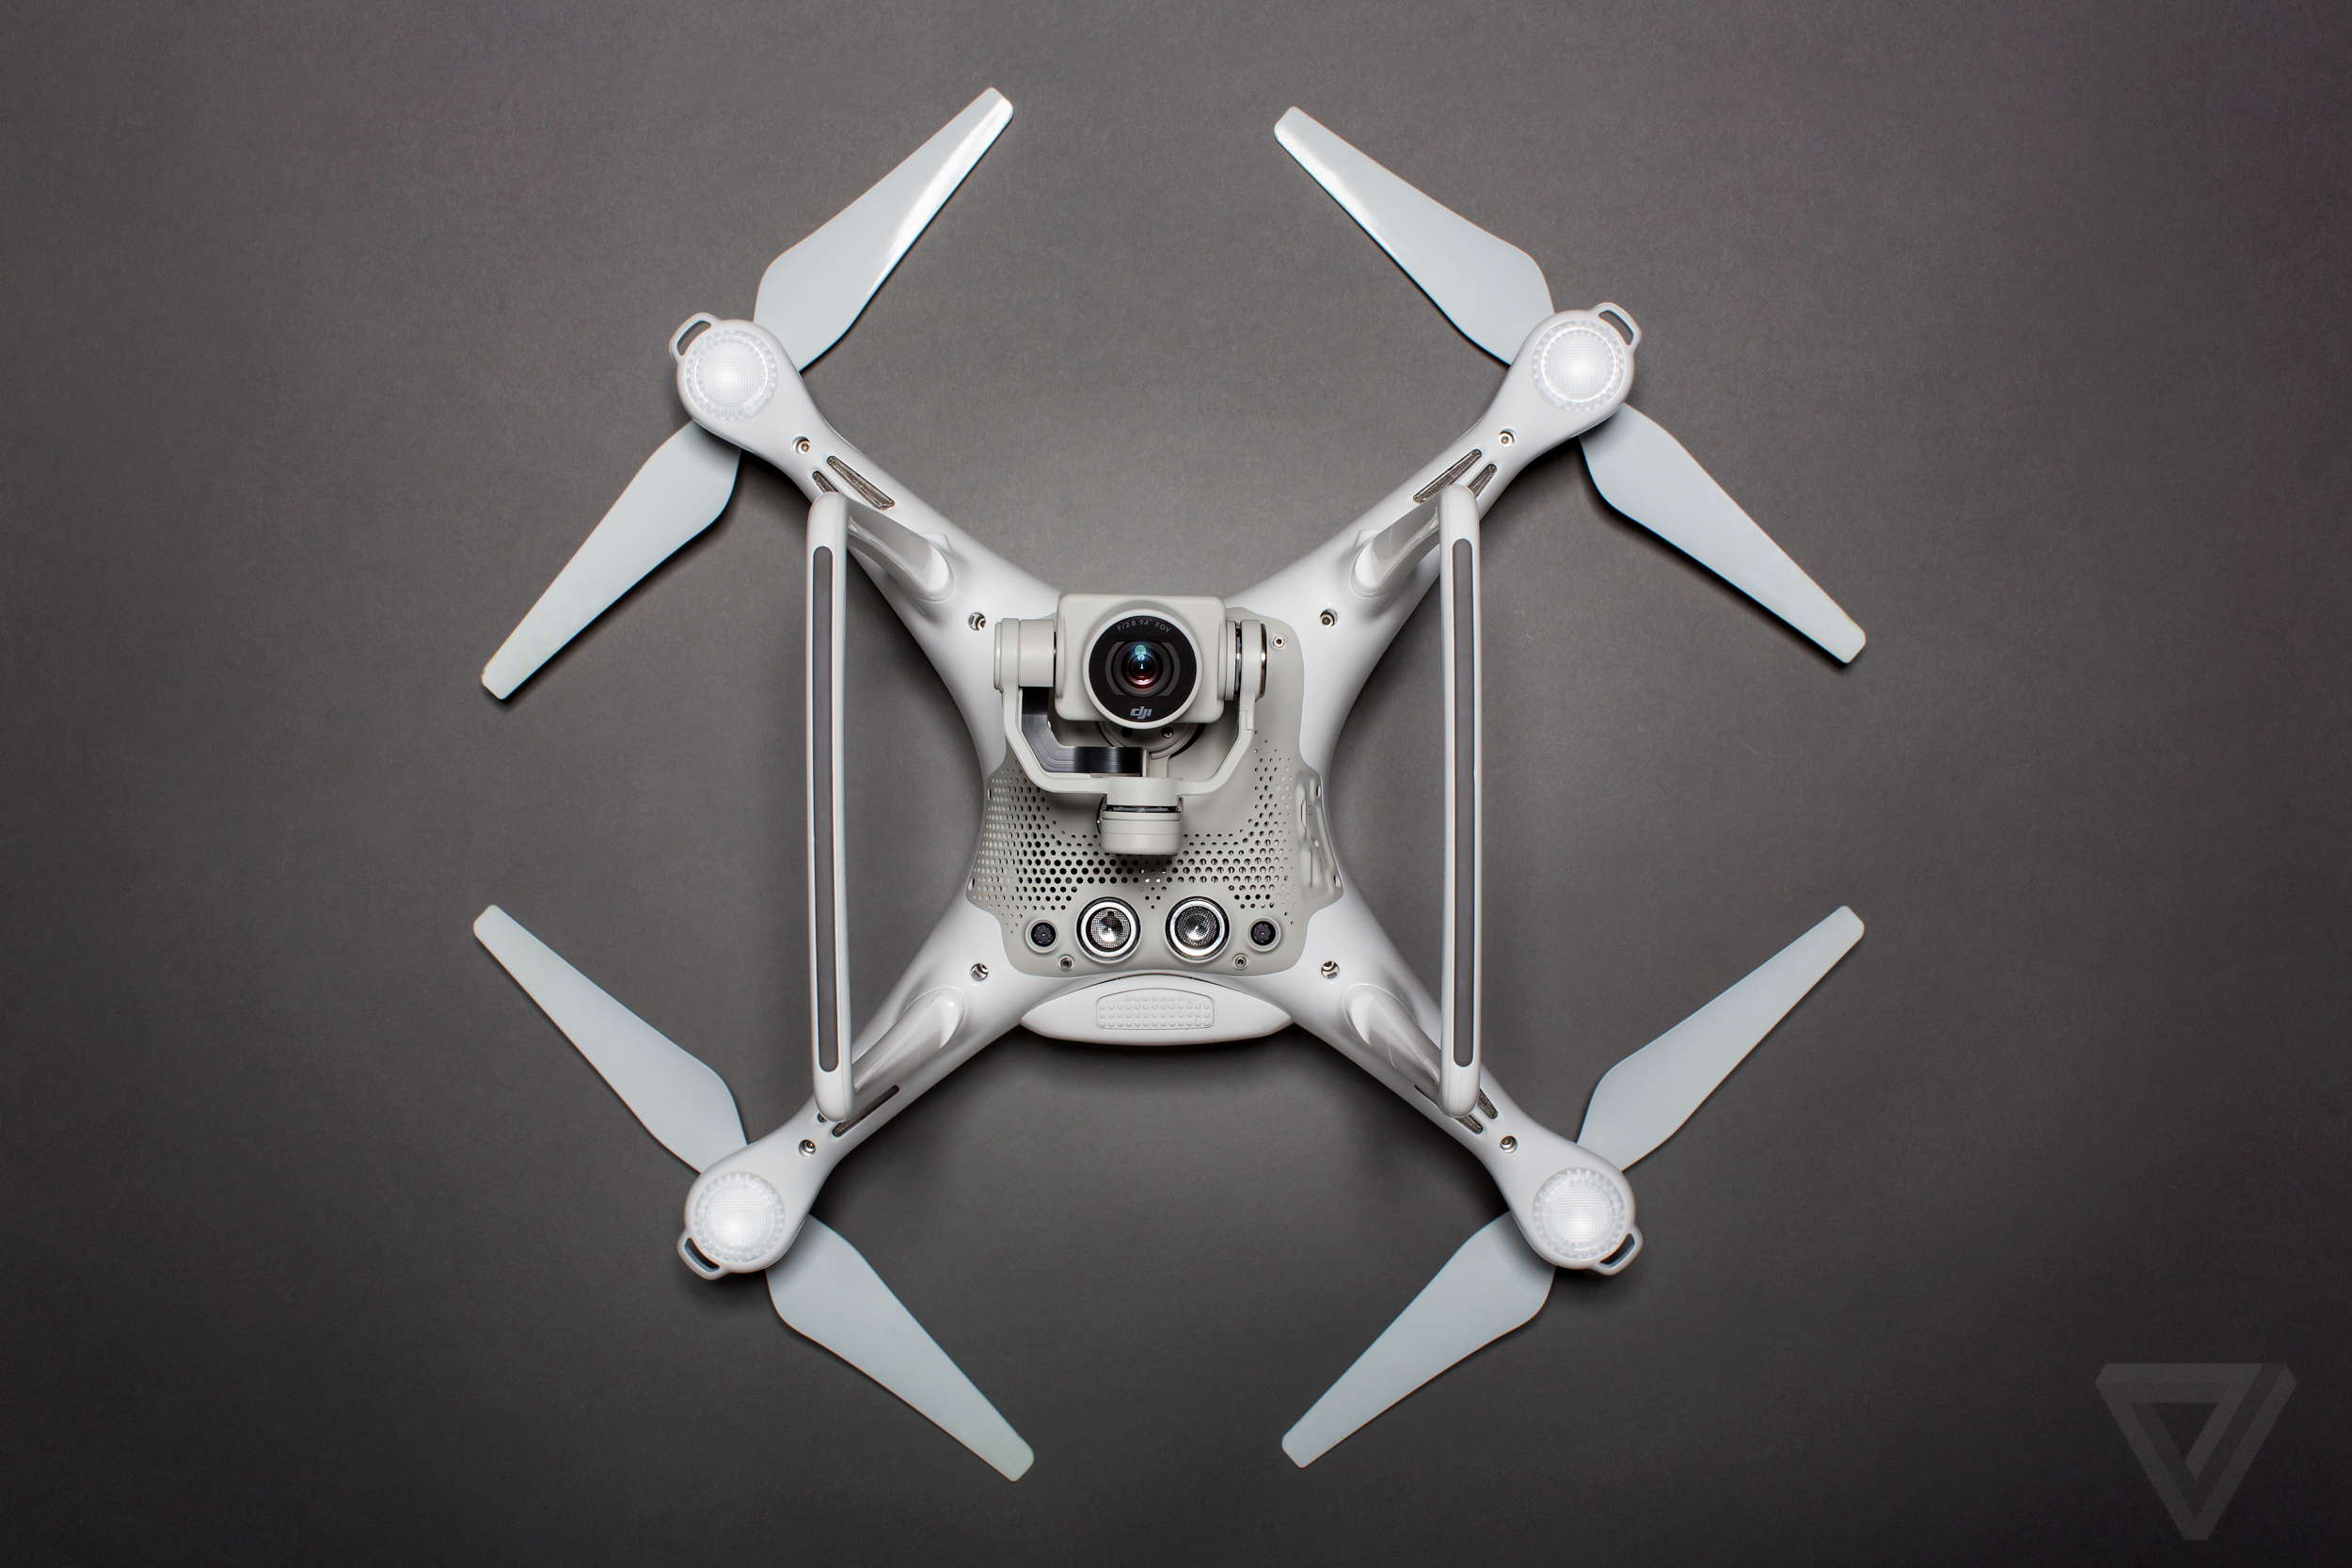 DJI's revolutionary Phantom 4 drone can dodge obstacles and